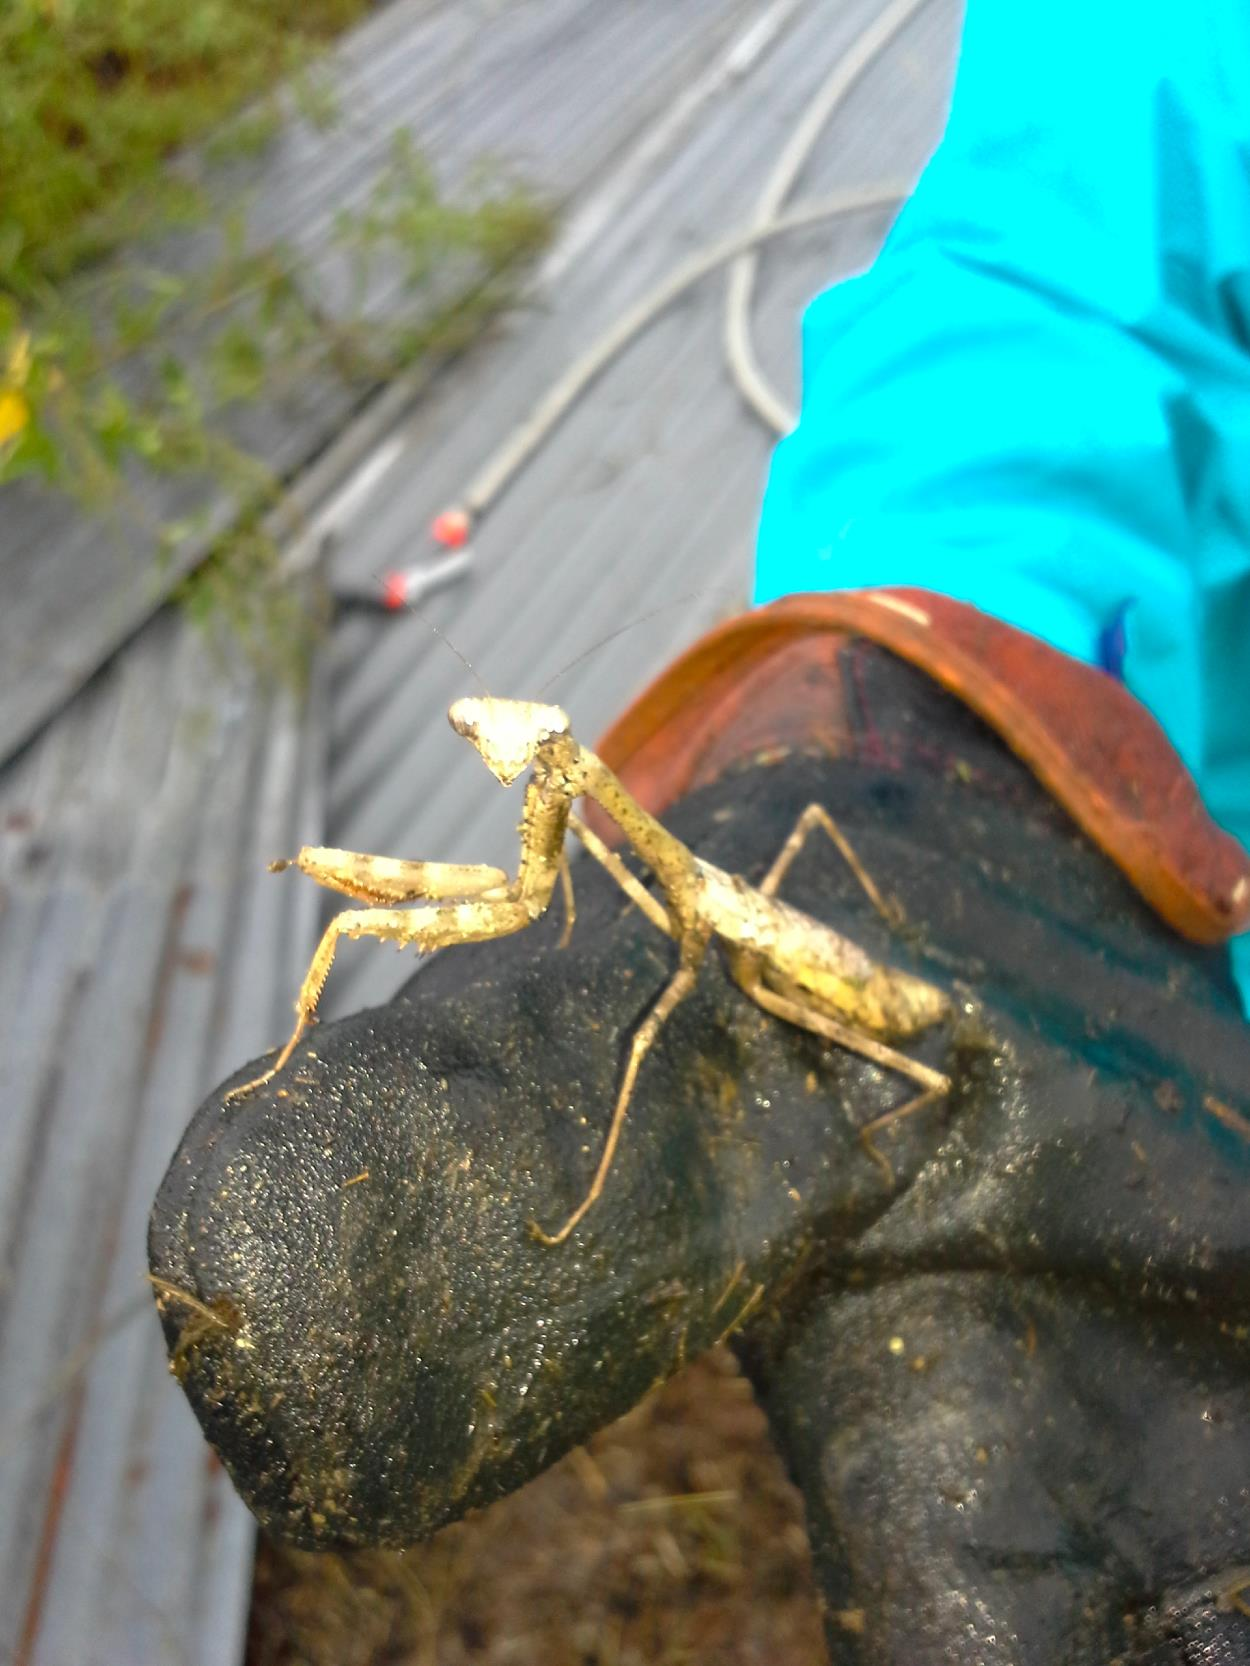 Found this praying mantis hanging perilously close to burning twigs. Don't worry, we ferried him to safety.